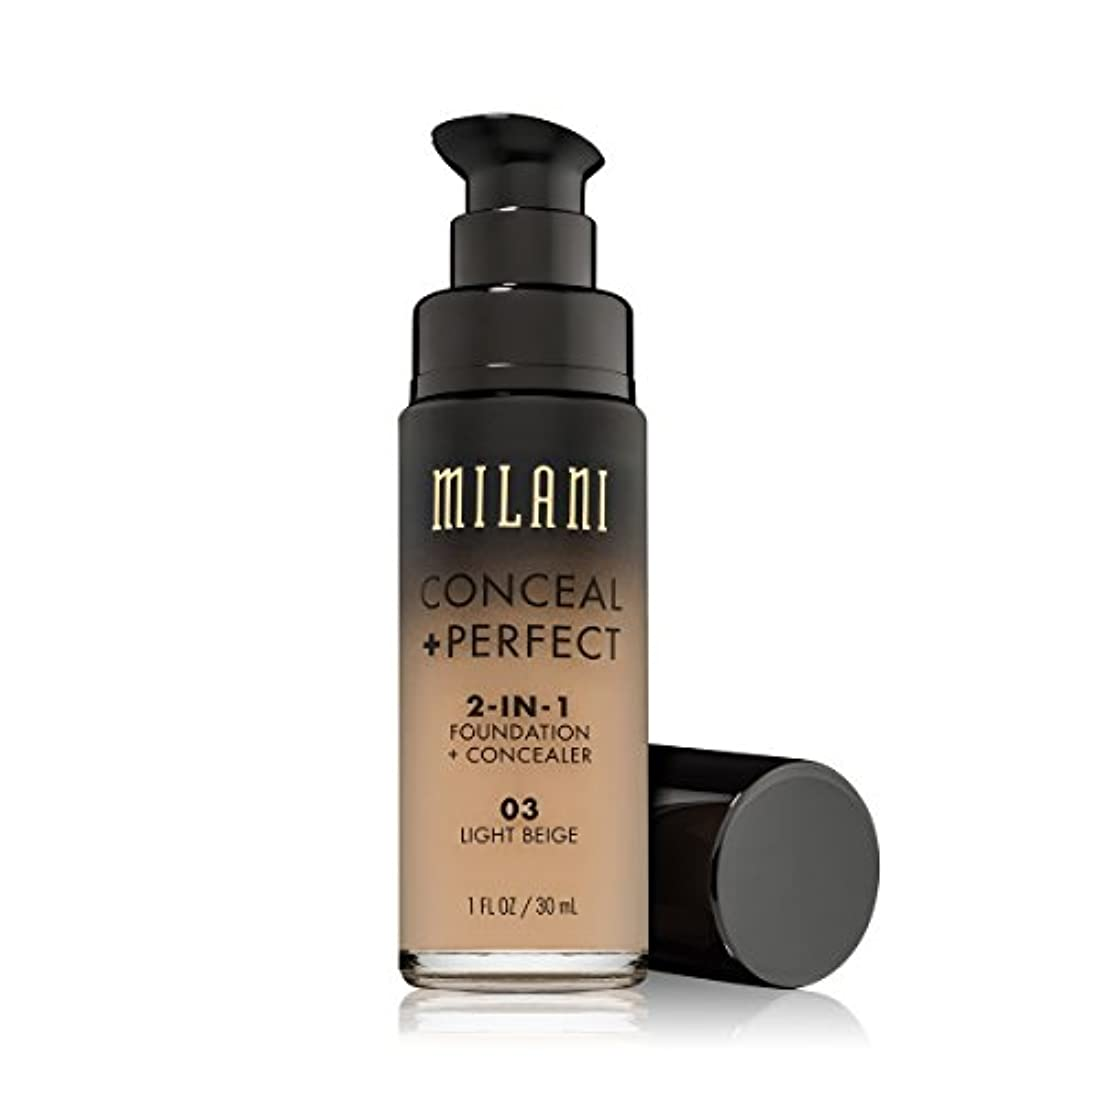 検査虫油MILANI Conceal + Perfect 2-In-1 Foundation + Concealer - Light Beige (並行輸入品)